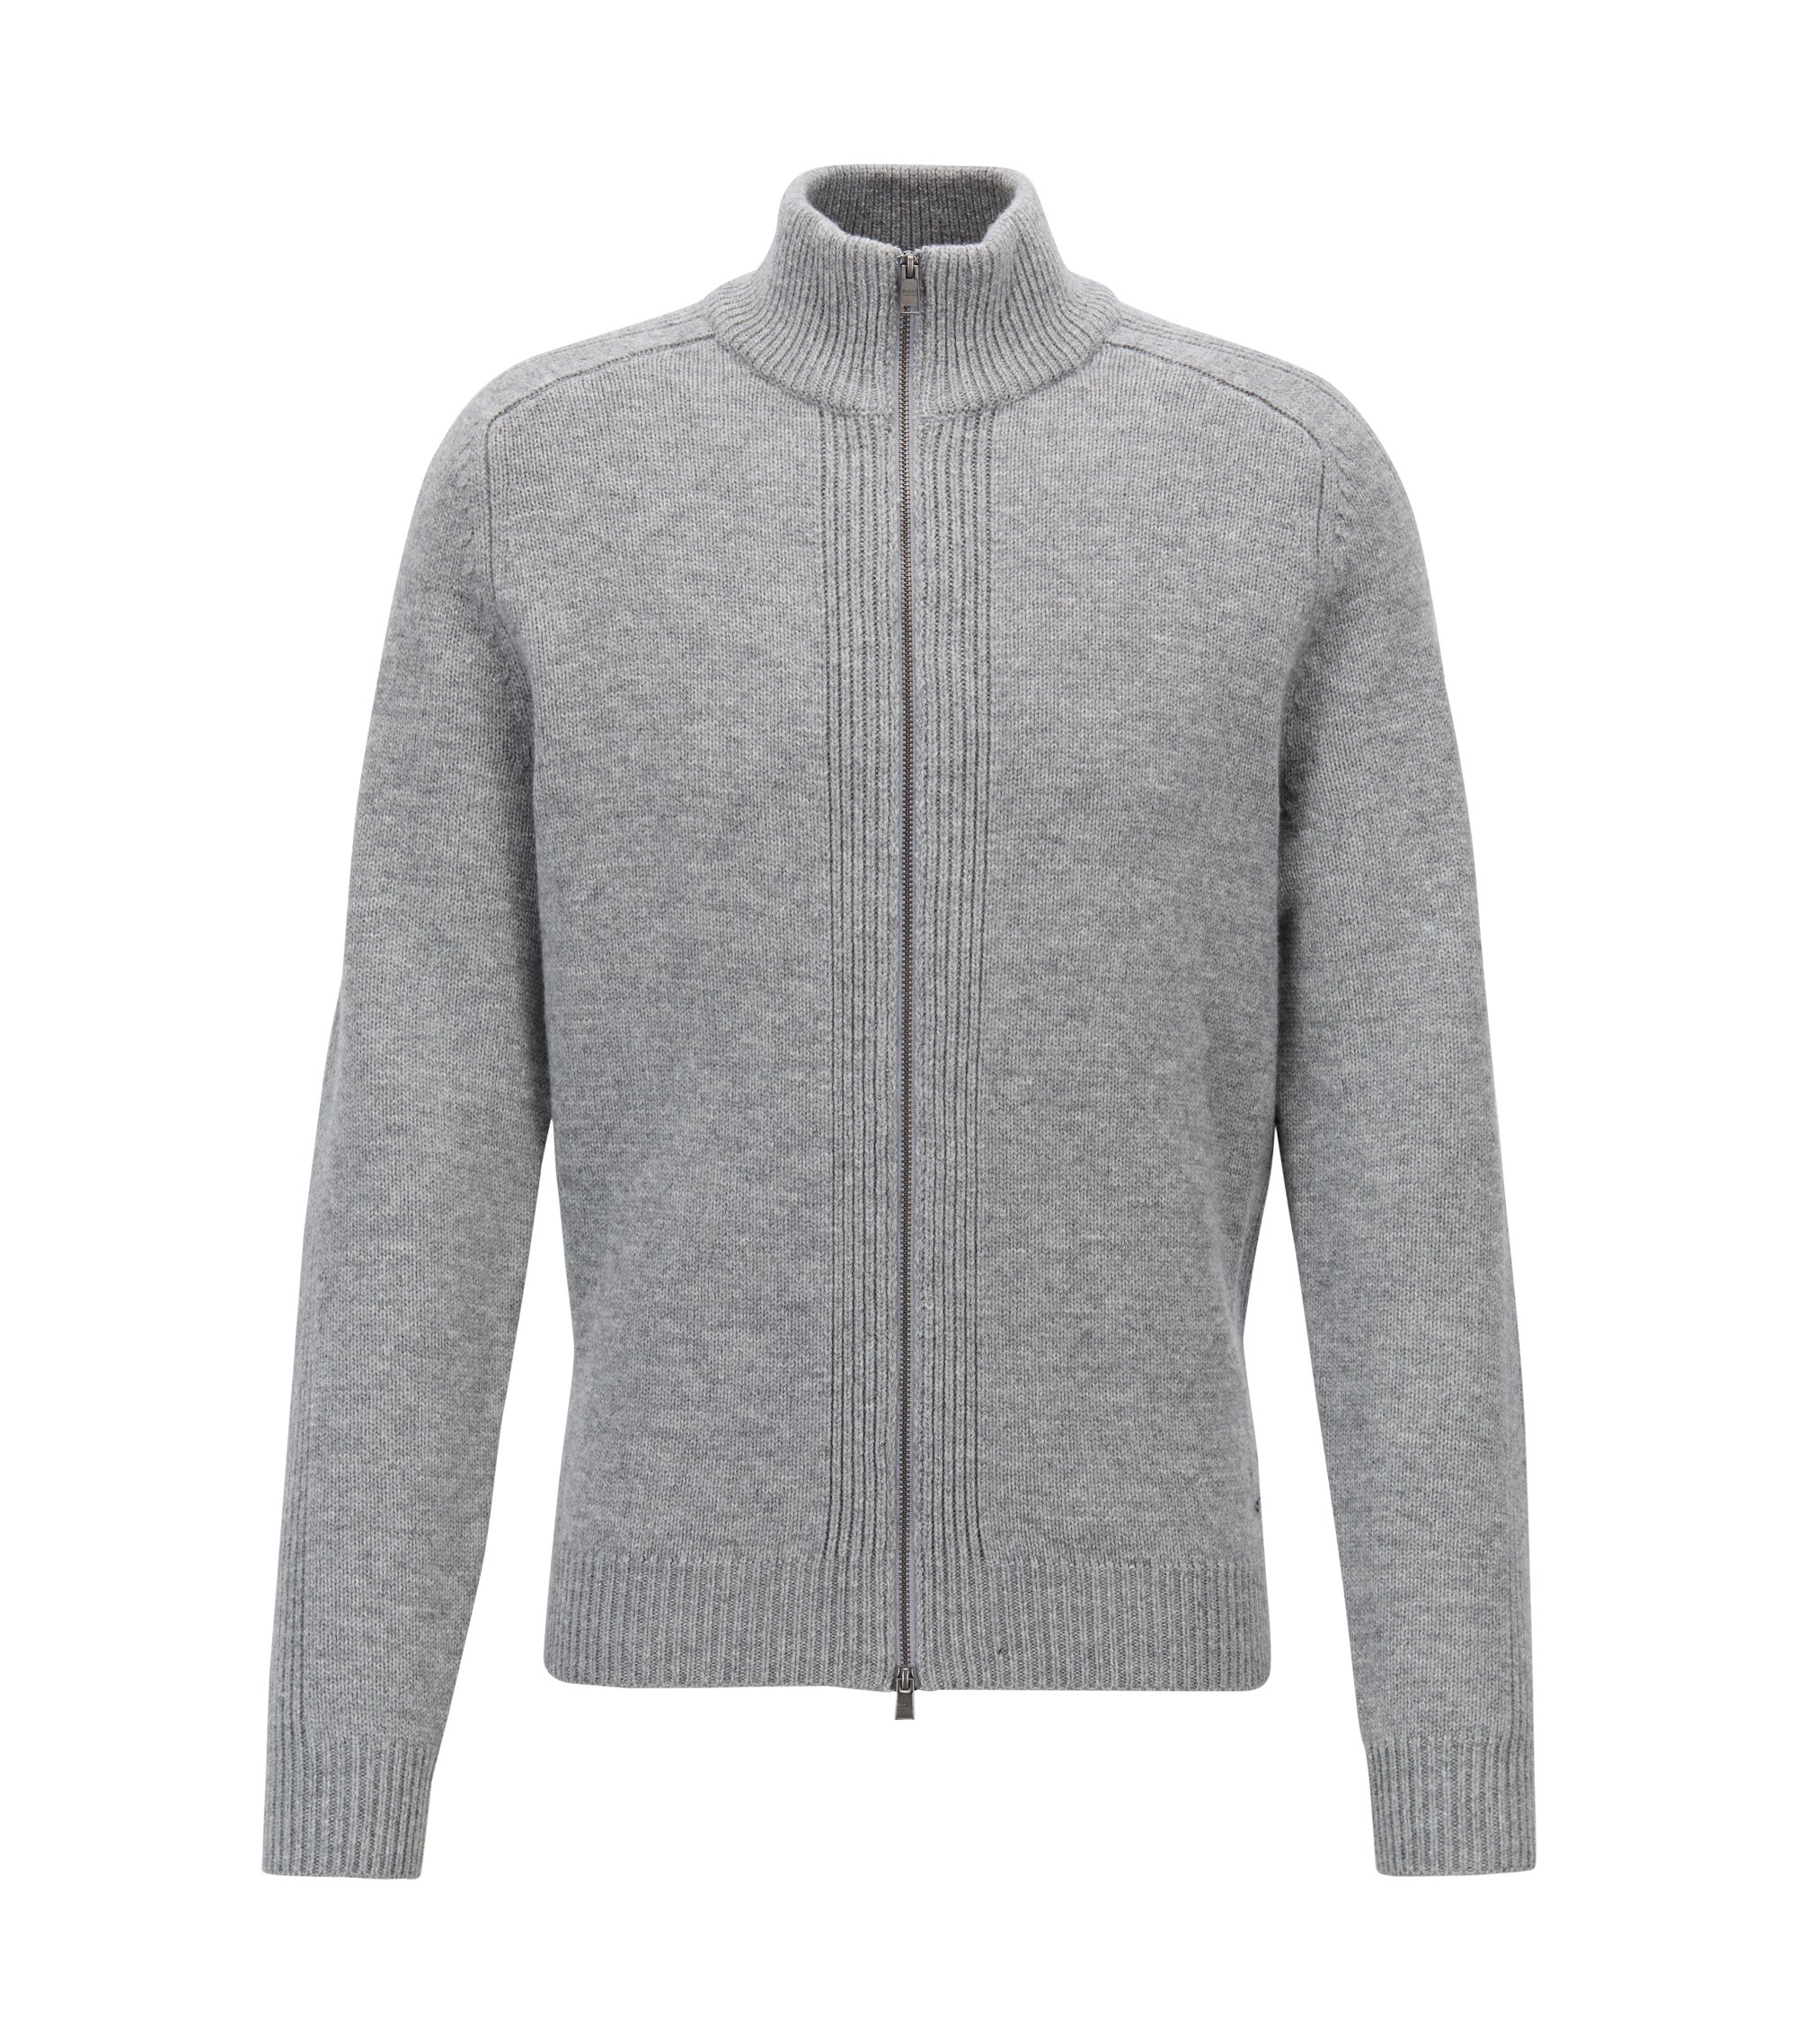 Stand-collar sweater in lambswool with two-way zipper, Silver